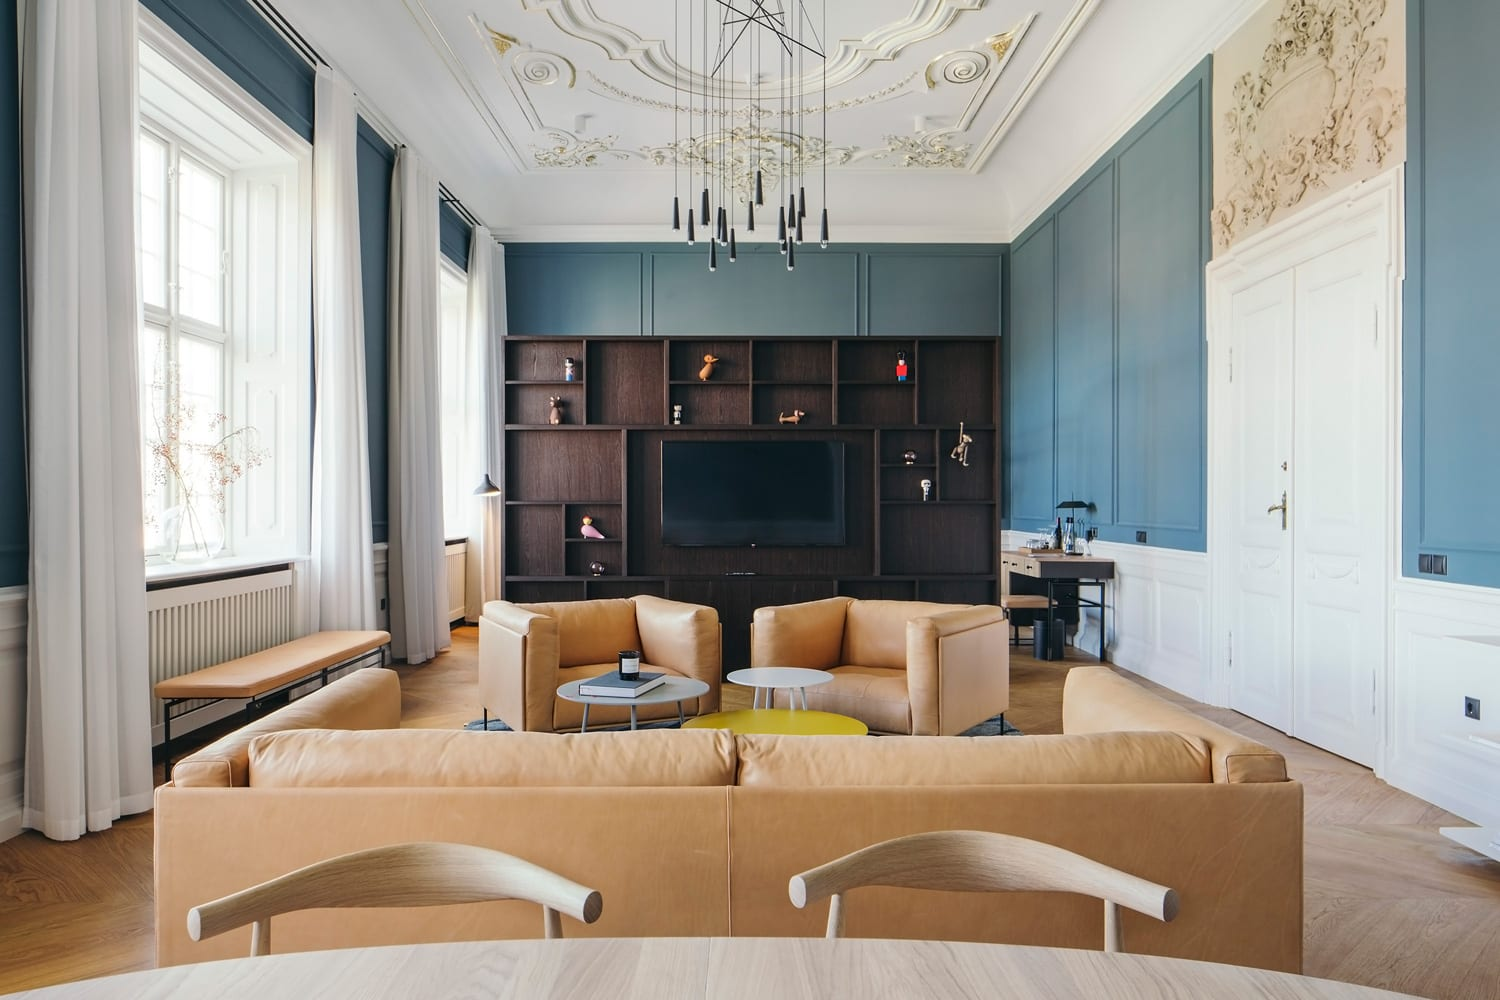 Nobis hotel copenhagen refurbished by wing rdhs yellowtrace for Design hotel copenhagen